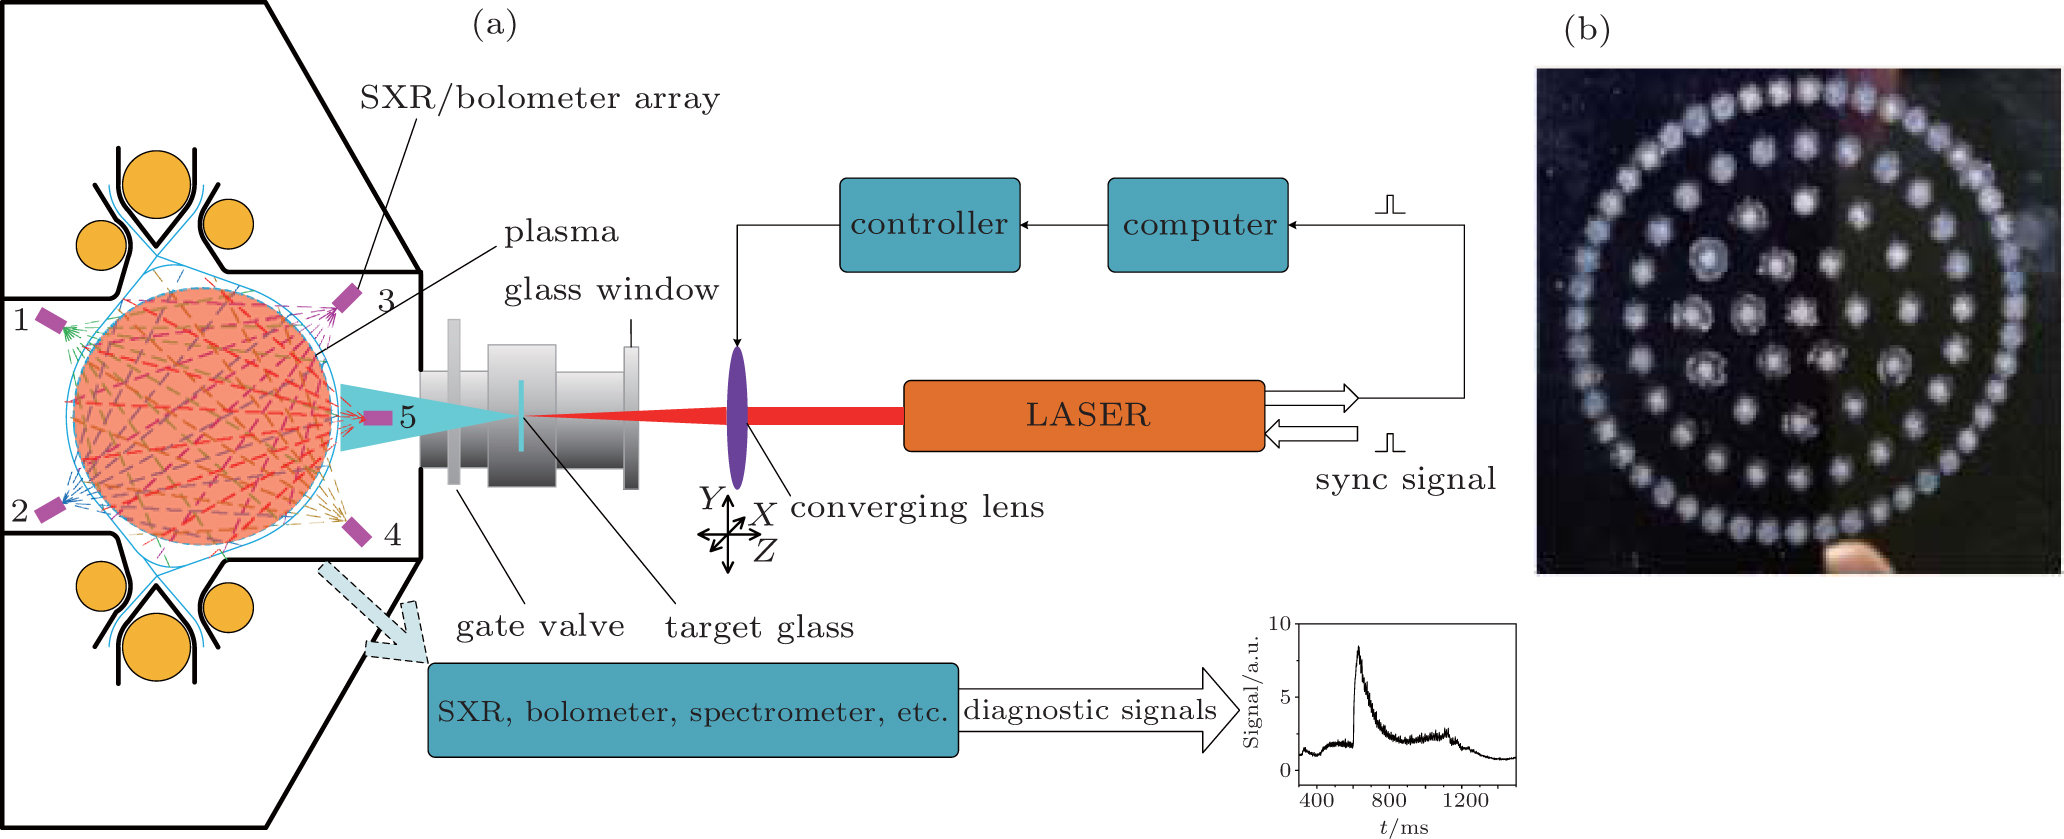 Investigation Of Impurity Transport Using Laser Blow Off Technique Schematic Diagram A Lbo System On Hl 2a And B Ablation Marks The Coating Side Target